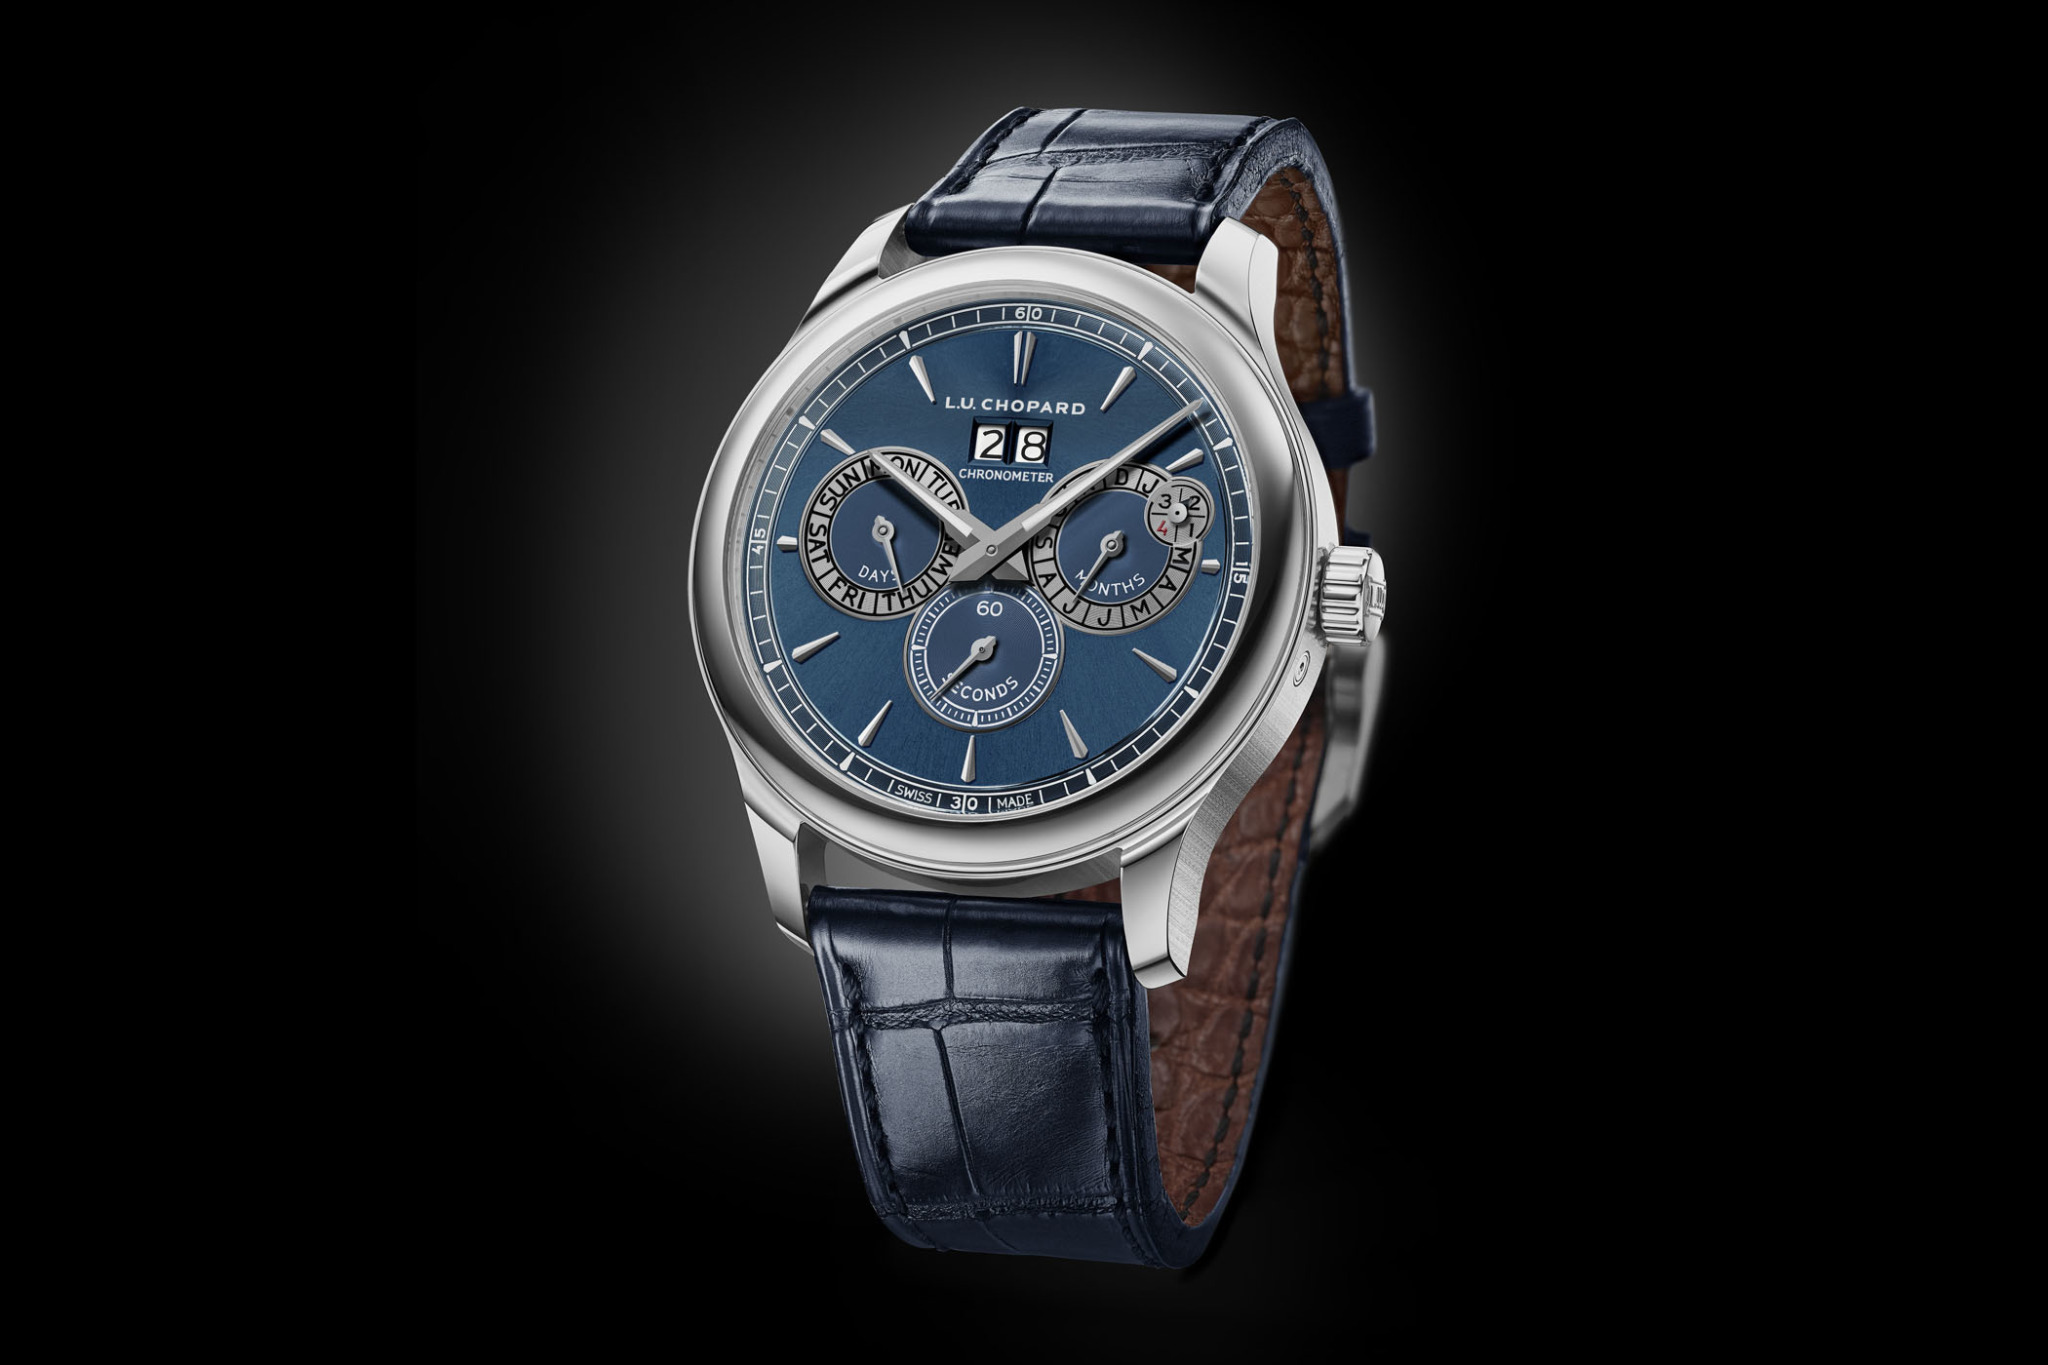 De Chopard L.U.C Perpetual Twin is vernieuwd